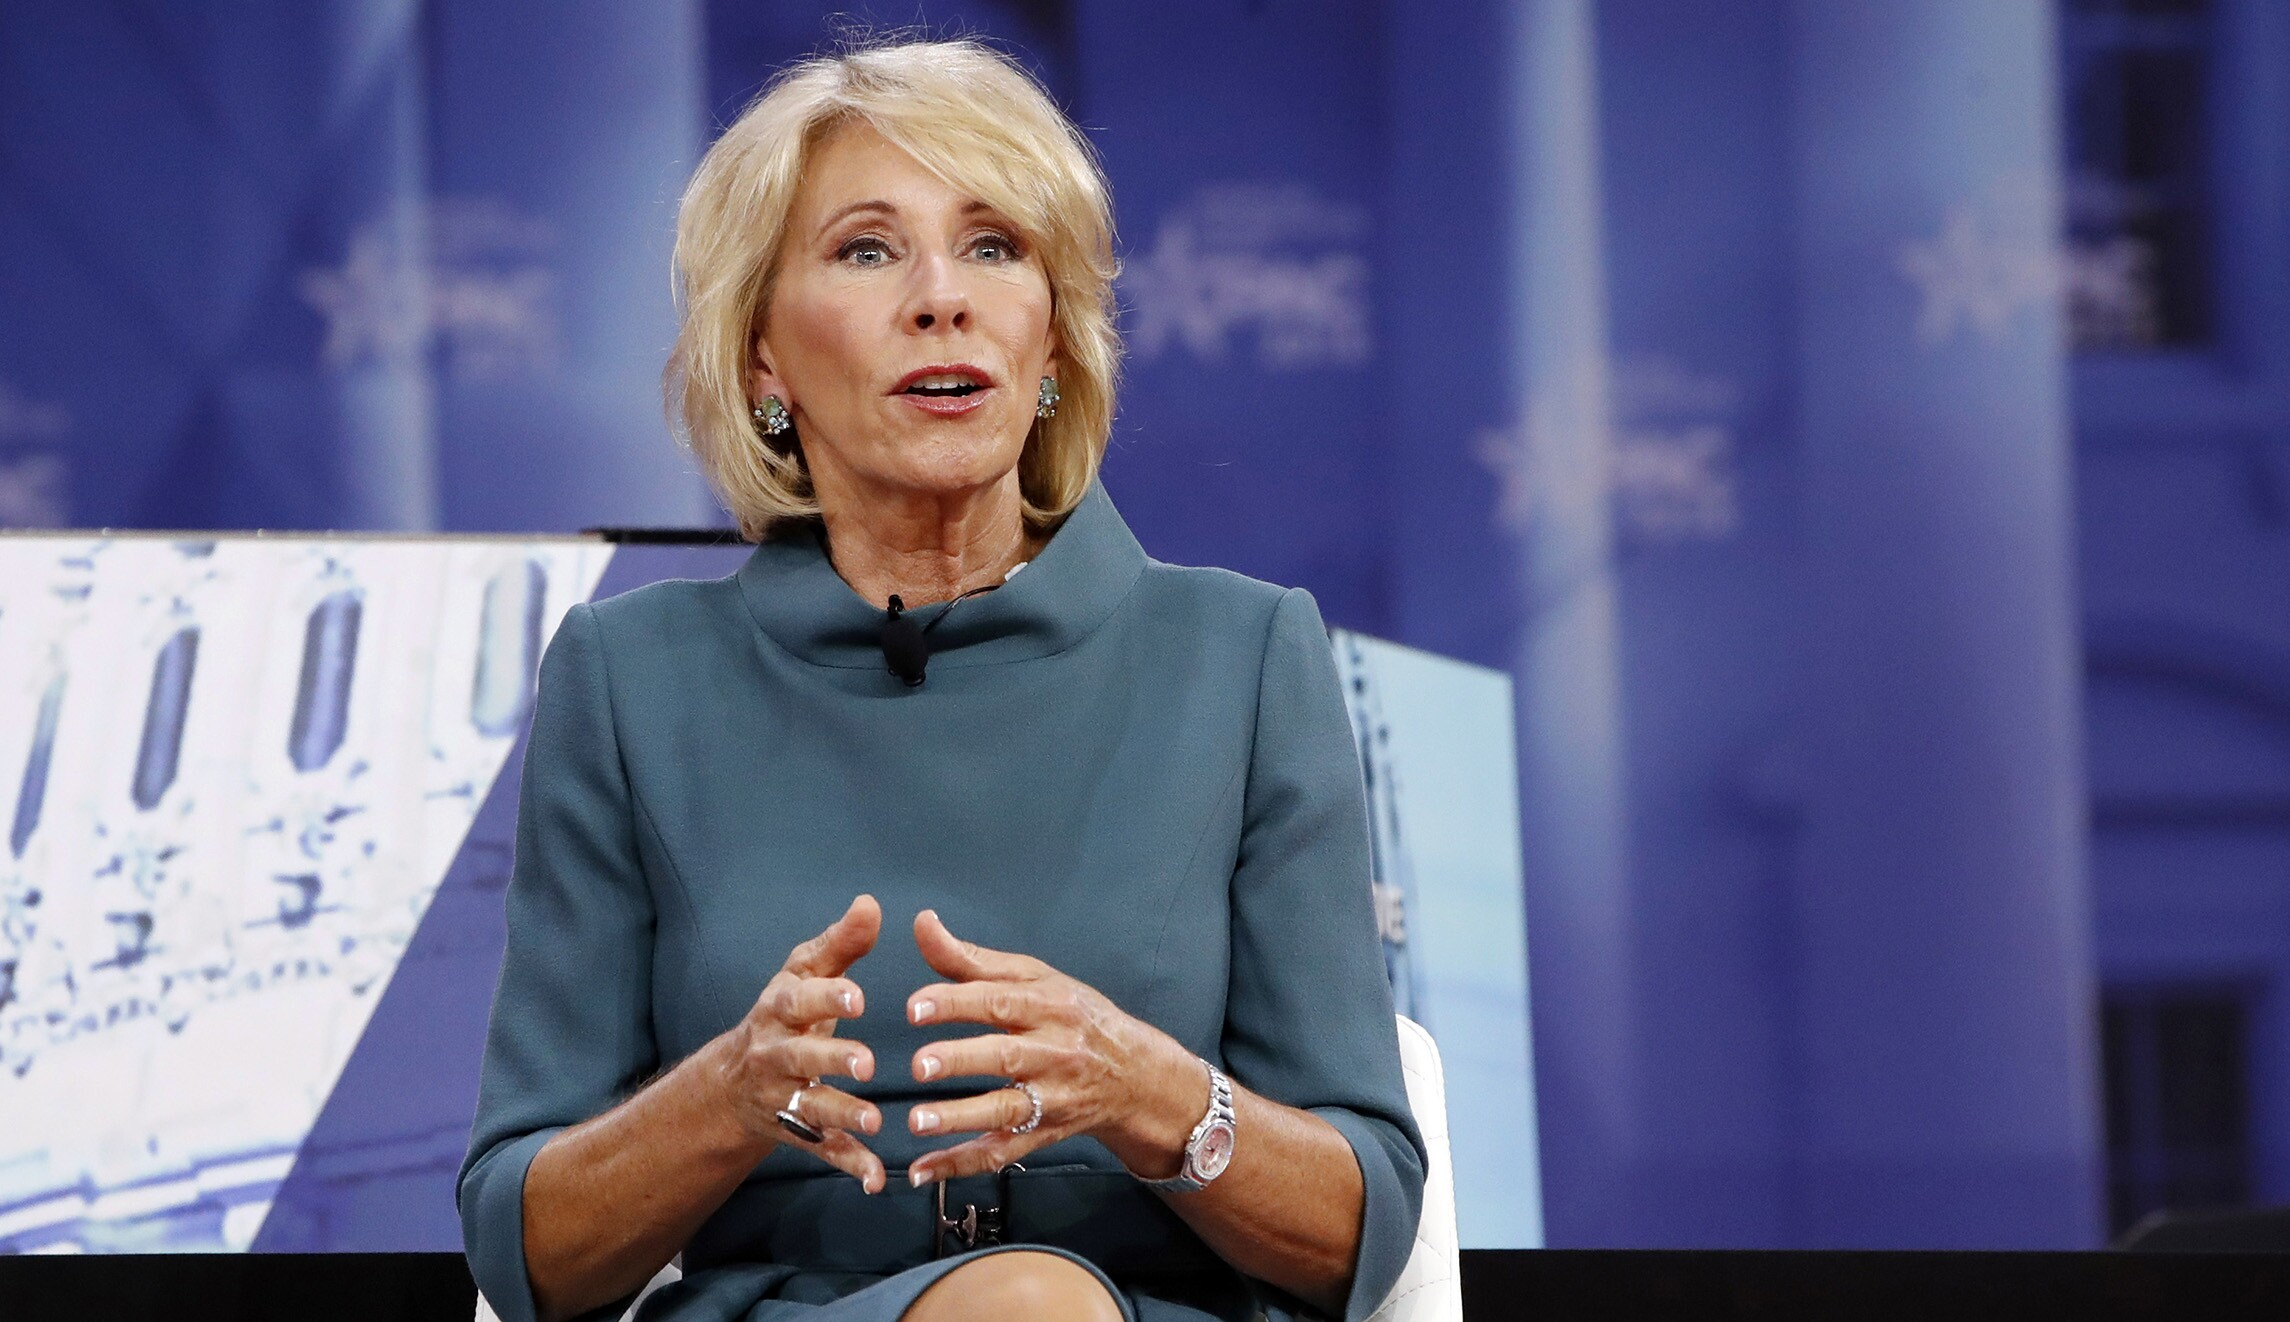 Betsy Devos Nomination Chilling >> On Campus Free Speech Betsy Devos Insists Good Ideas Are Always